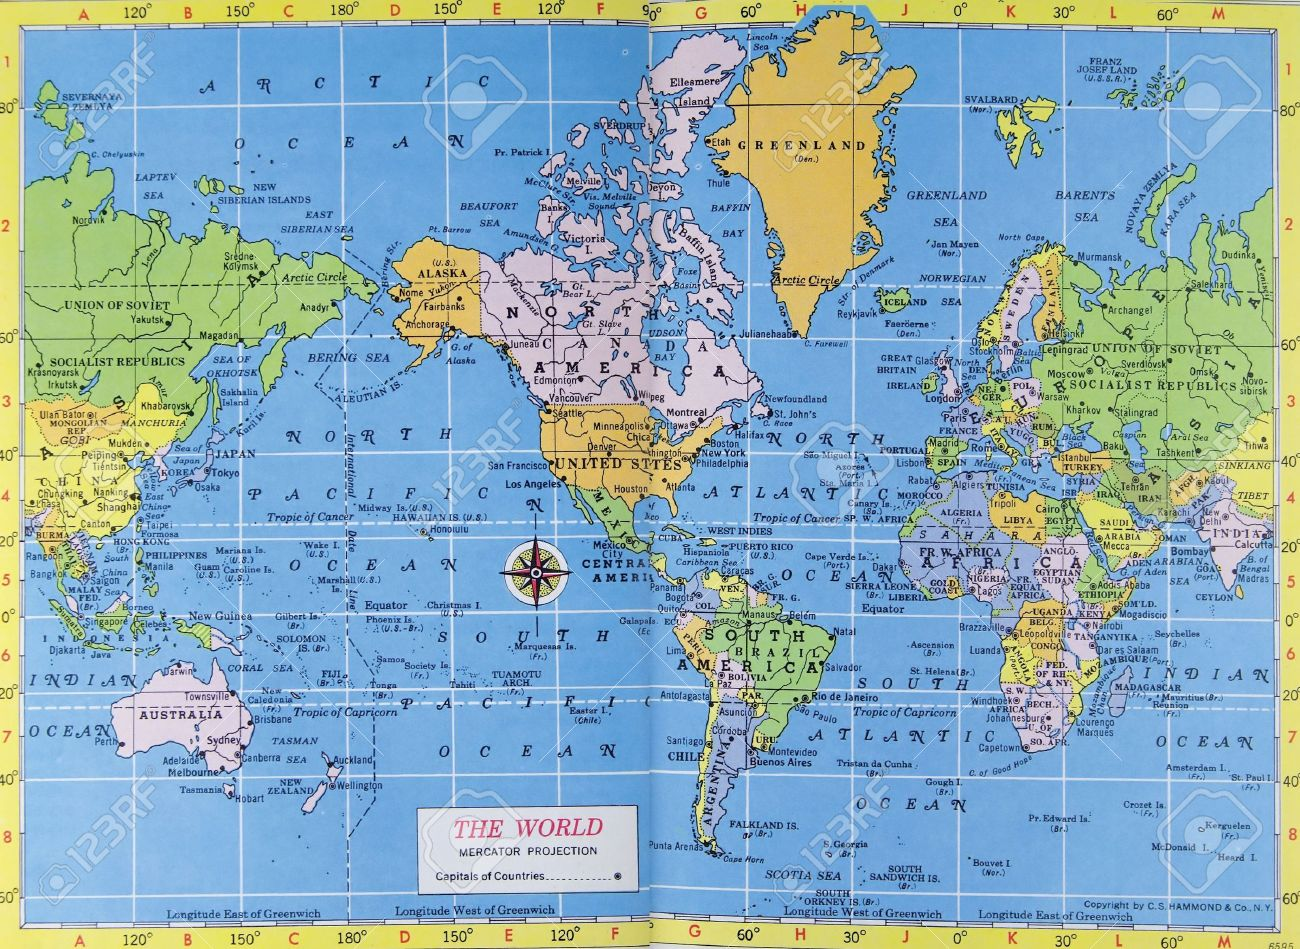 Vintage map of the world mercator projection stock photo picture vintage map of the world mercator projection stock photo 2816587 sciox Choice Image